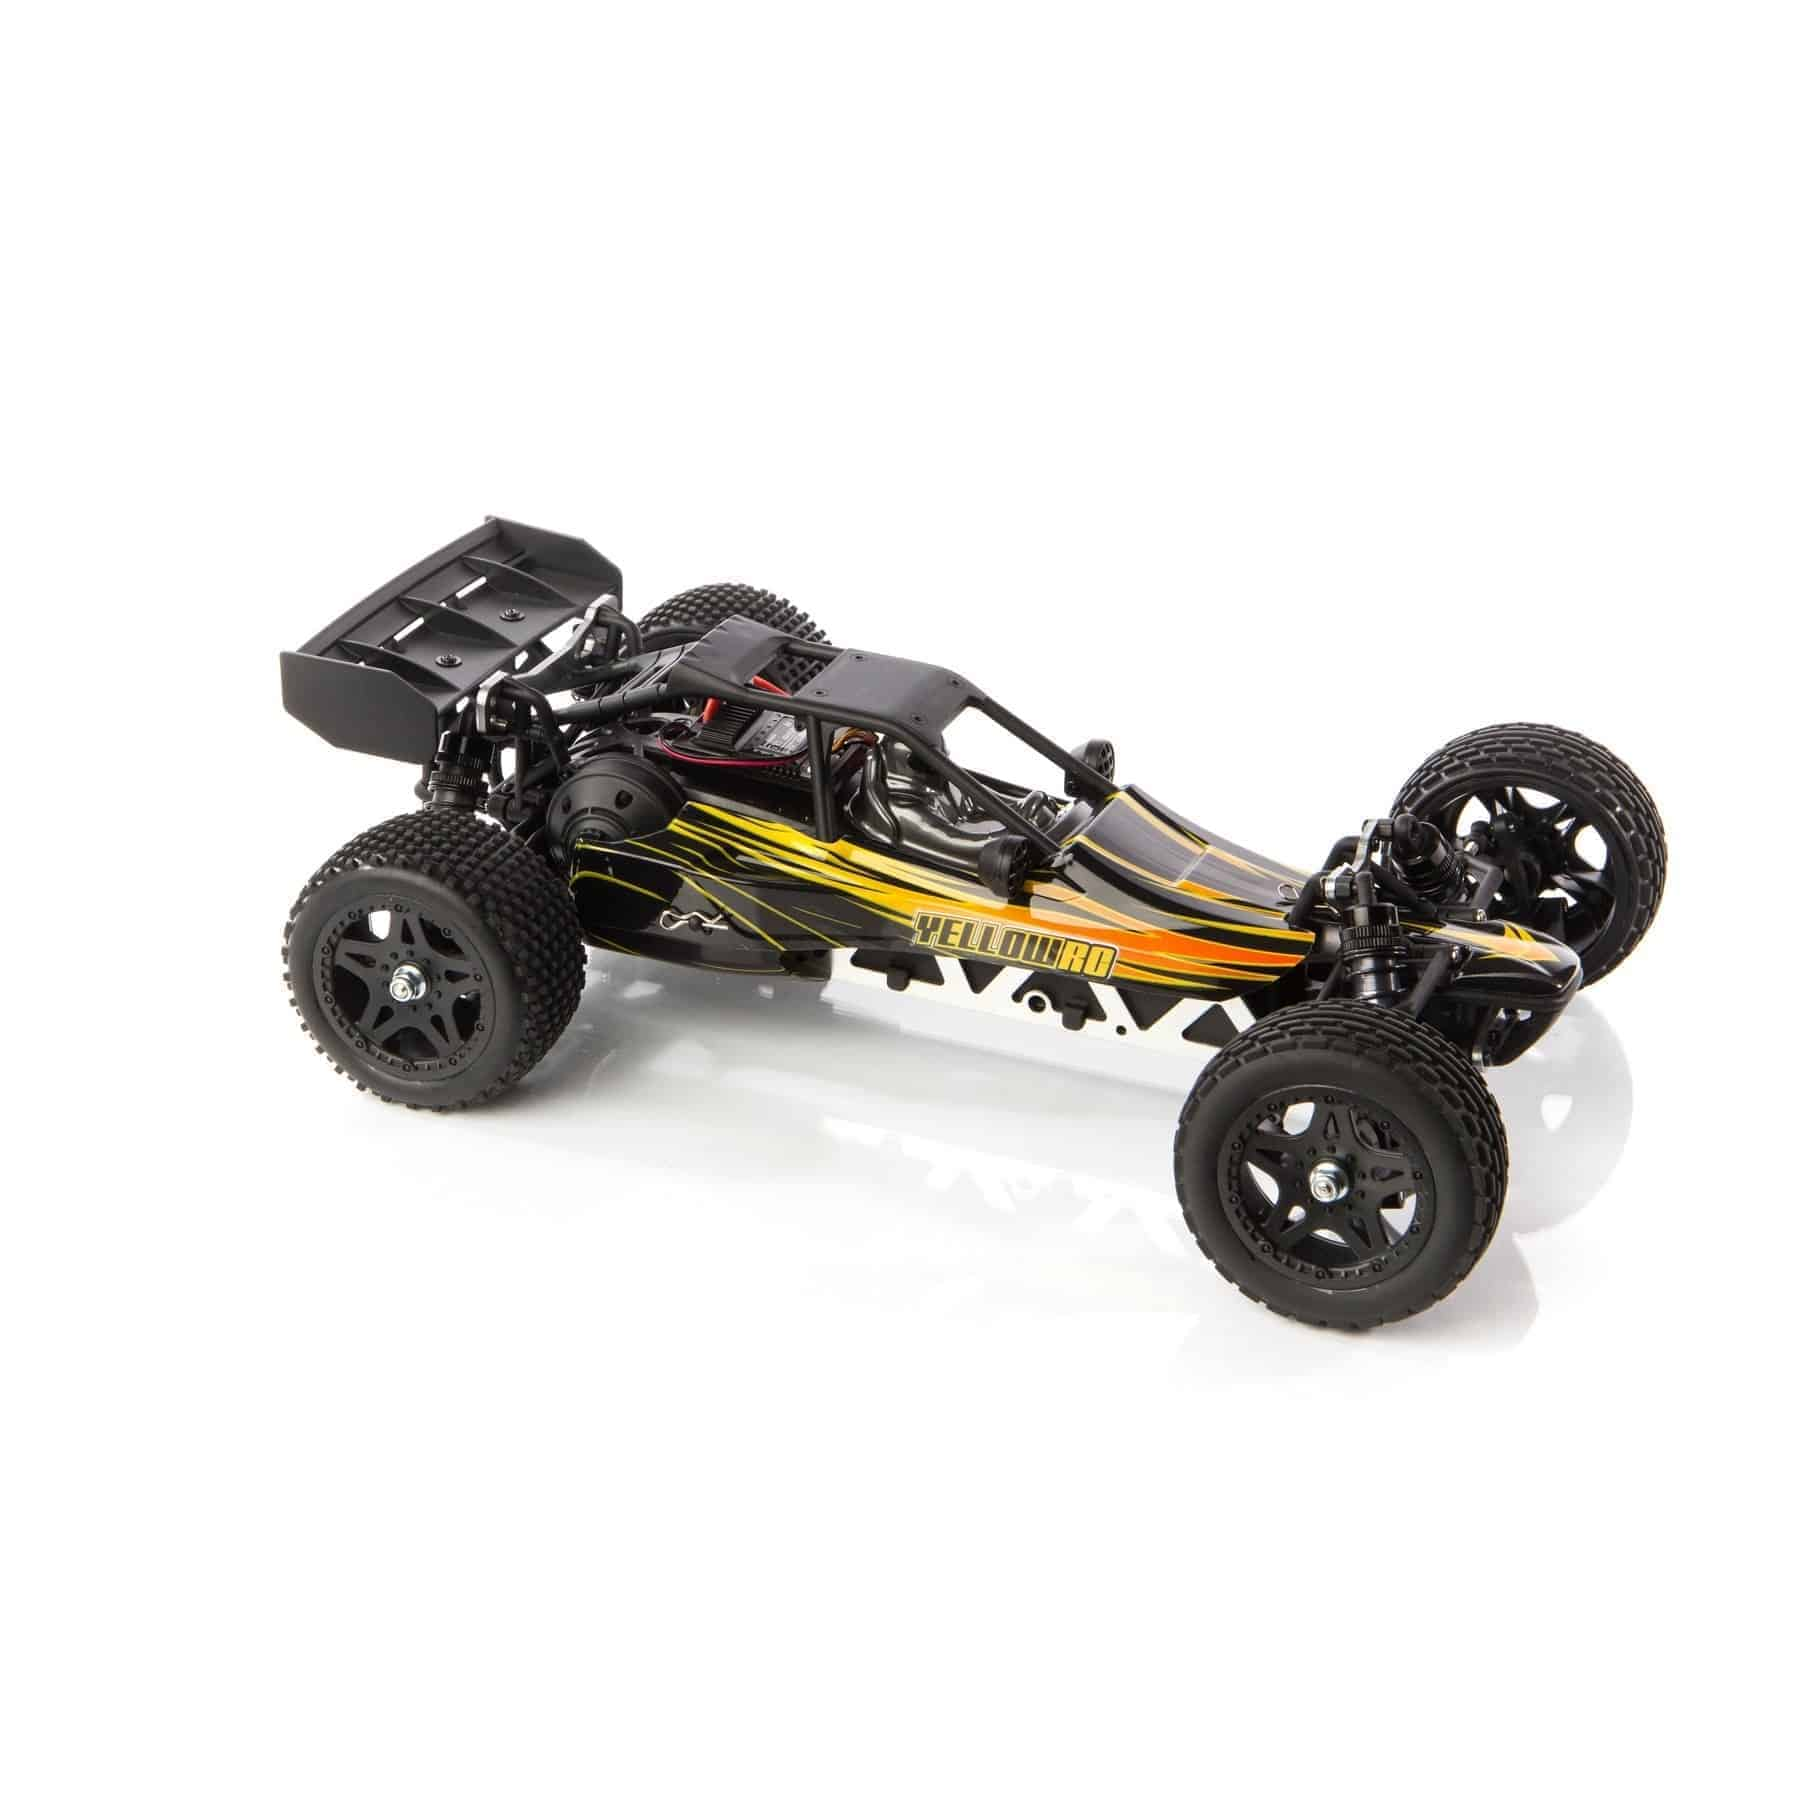 YellowRC Dune Brushless Racer 1/12 Scale 2.4GHz RTR